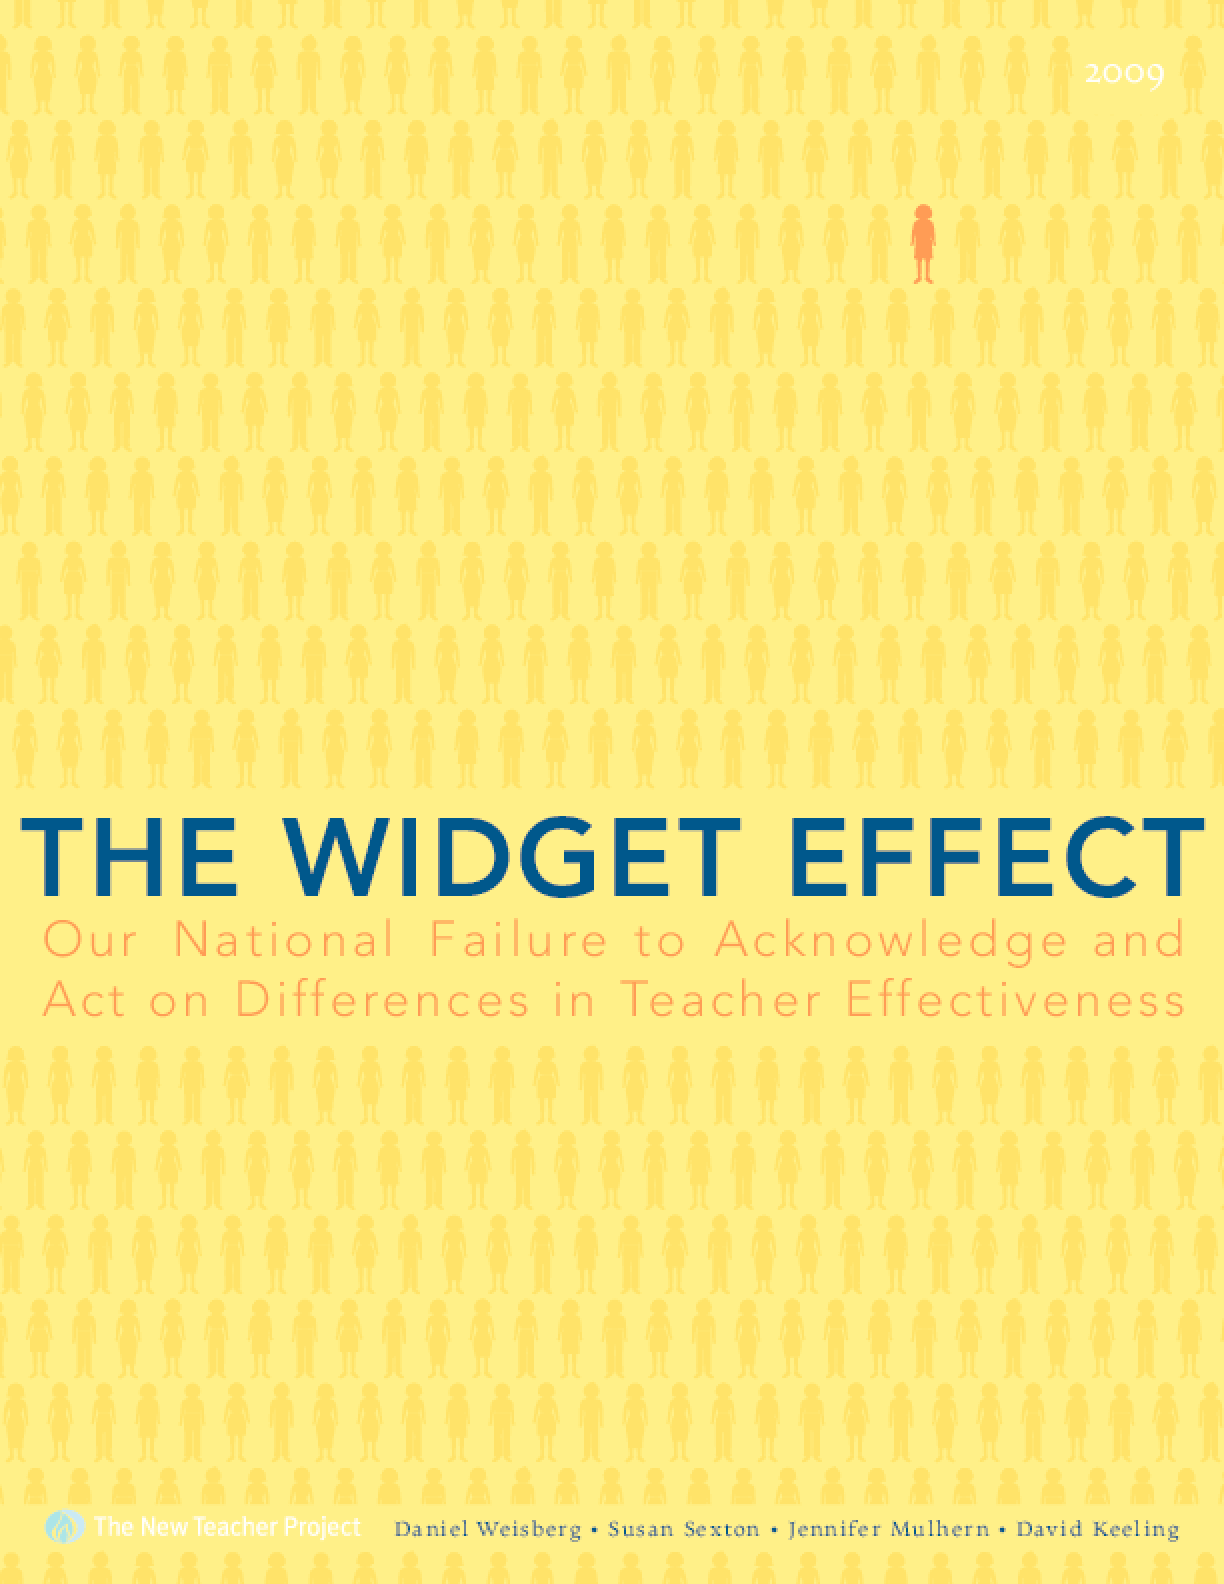 Widget Effect: Our National Failure to Acknowledge and Act on Differences in Teacher Effectiveness, The